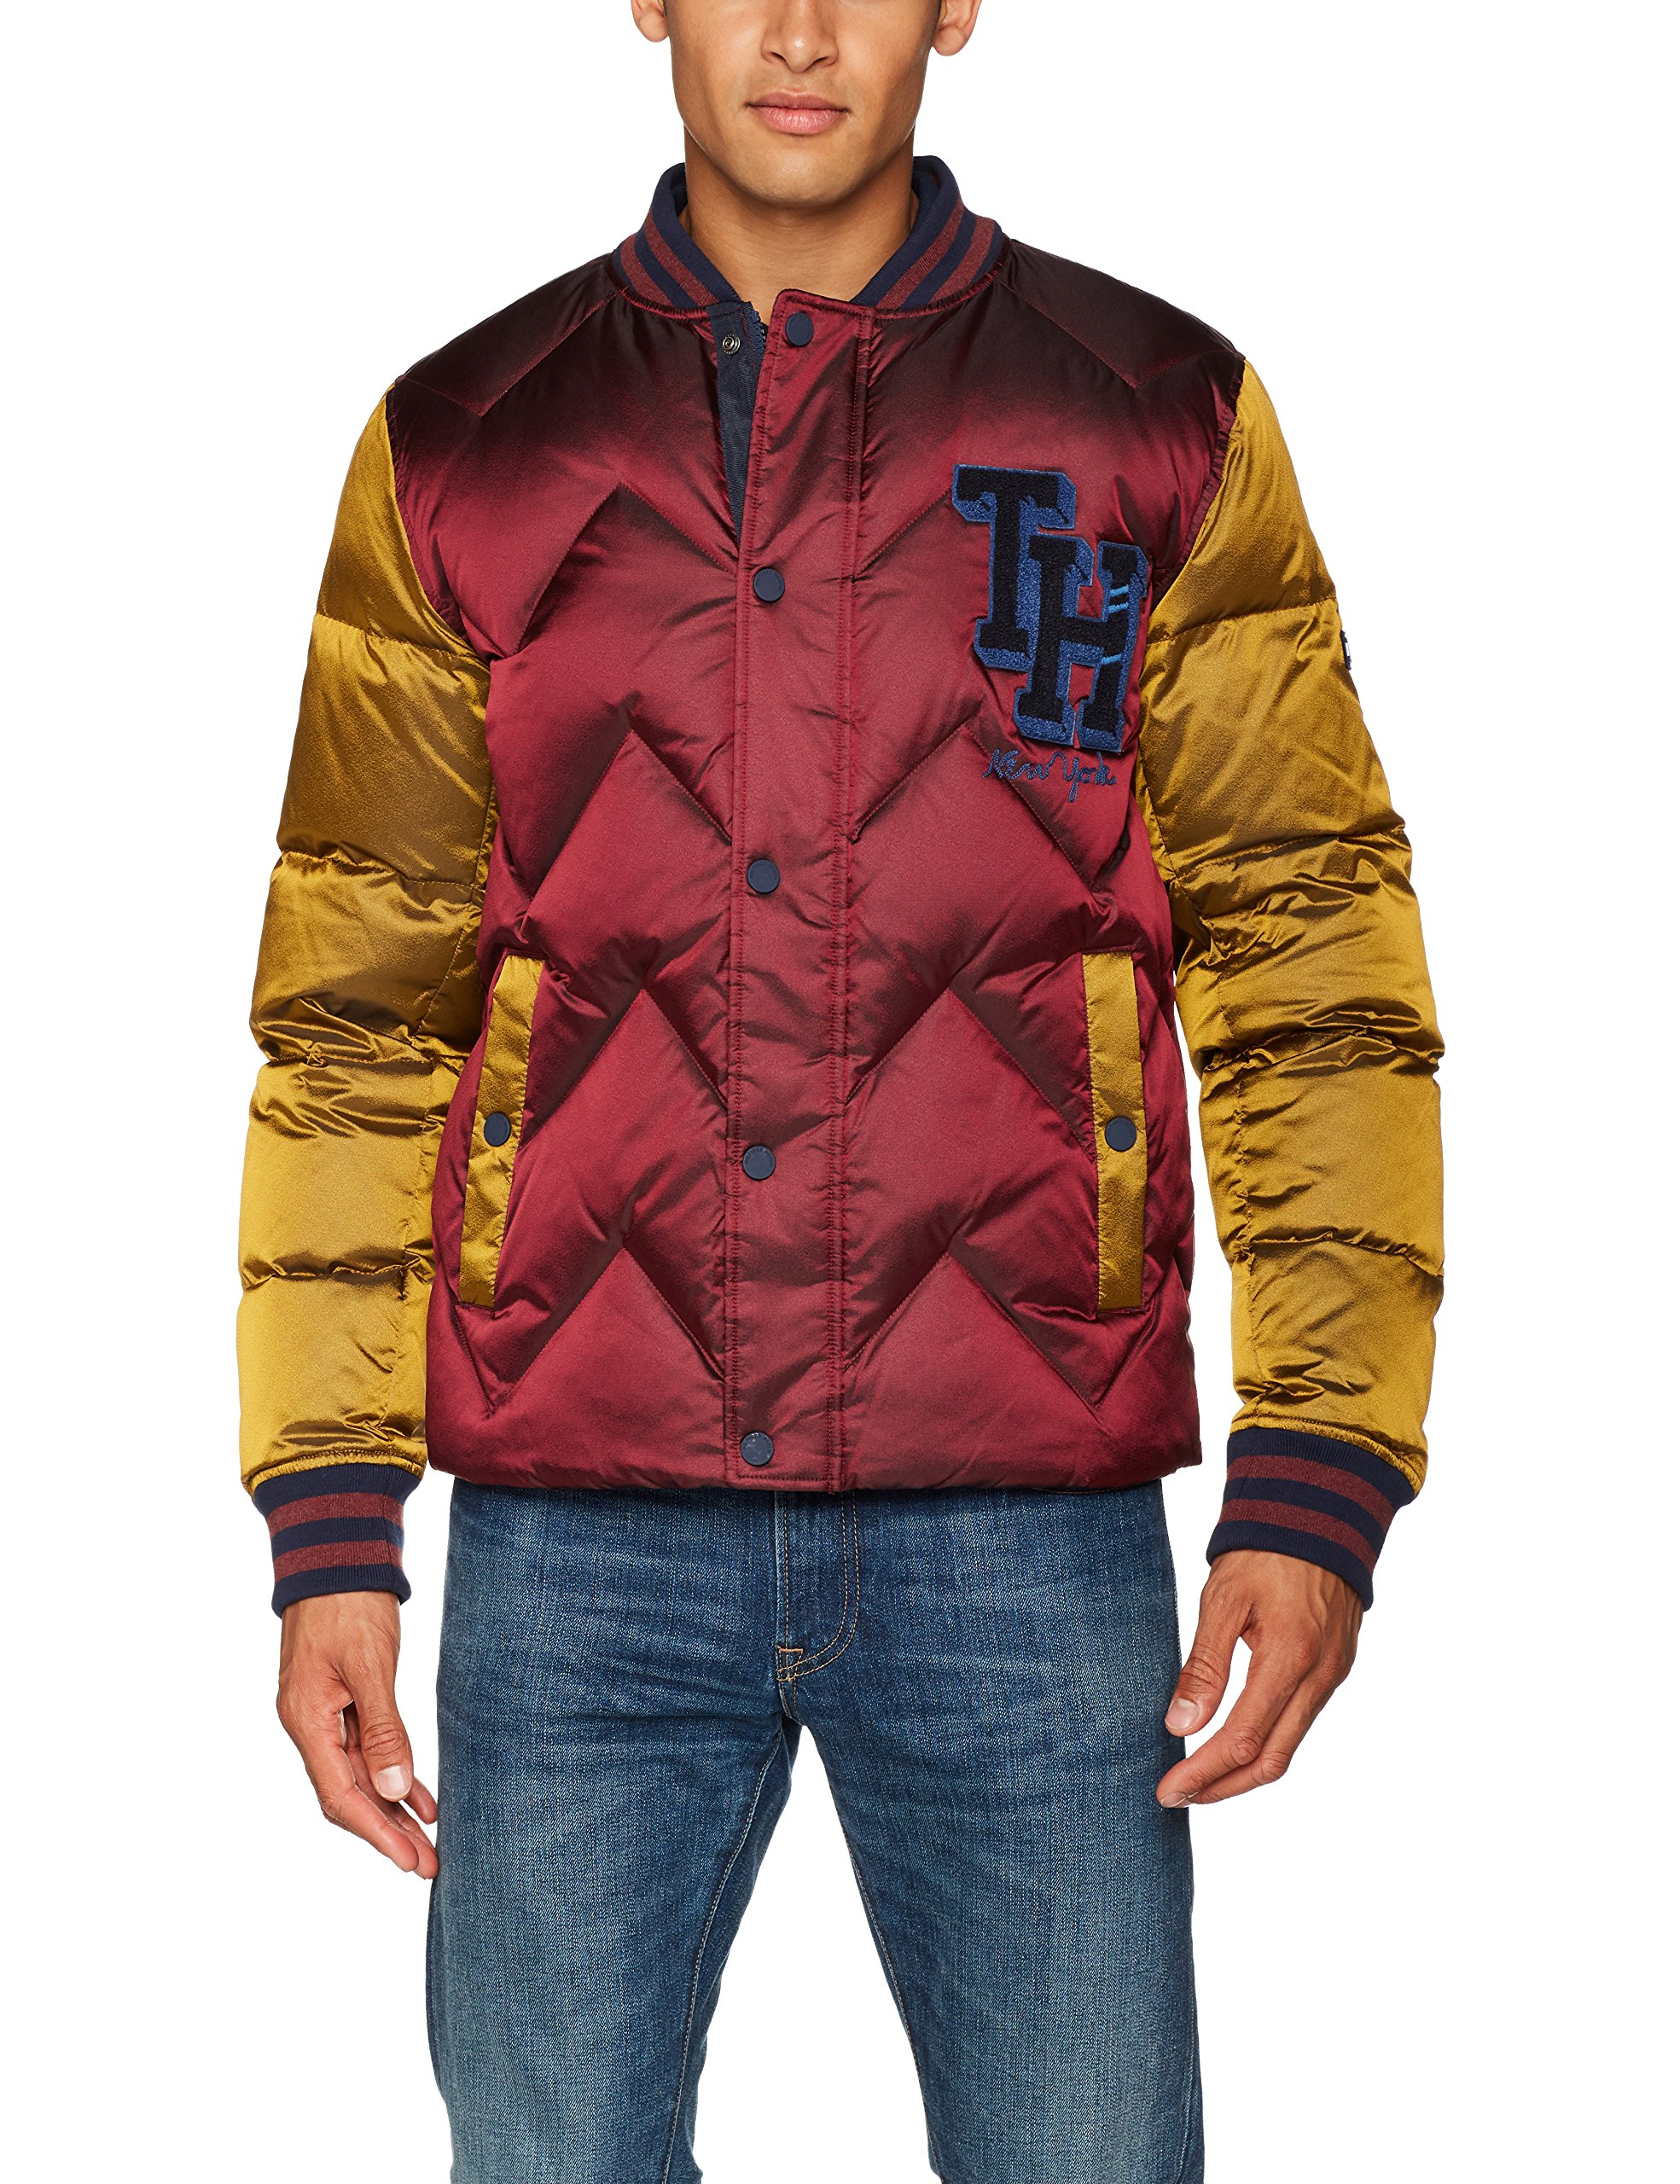 Wine Longues Manches Tommy 901Large Jeans Down Rougewindsor Homme gold Varsity Doudoune Veste Bomber Imb6vgyf7Y